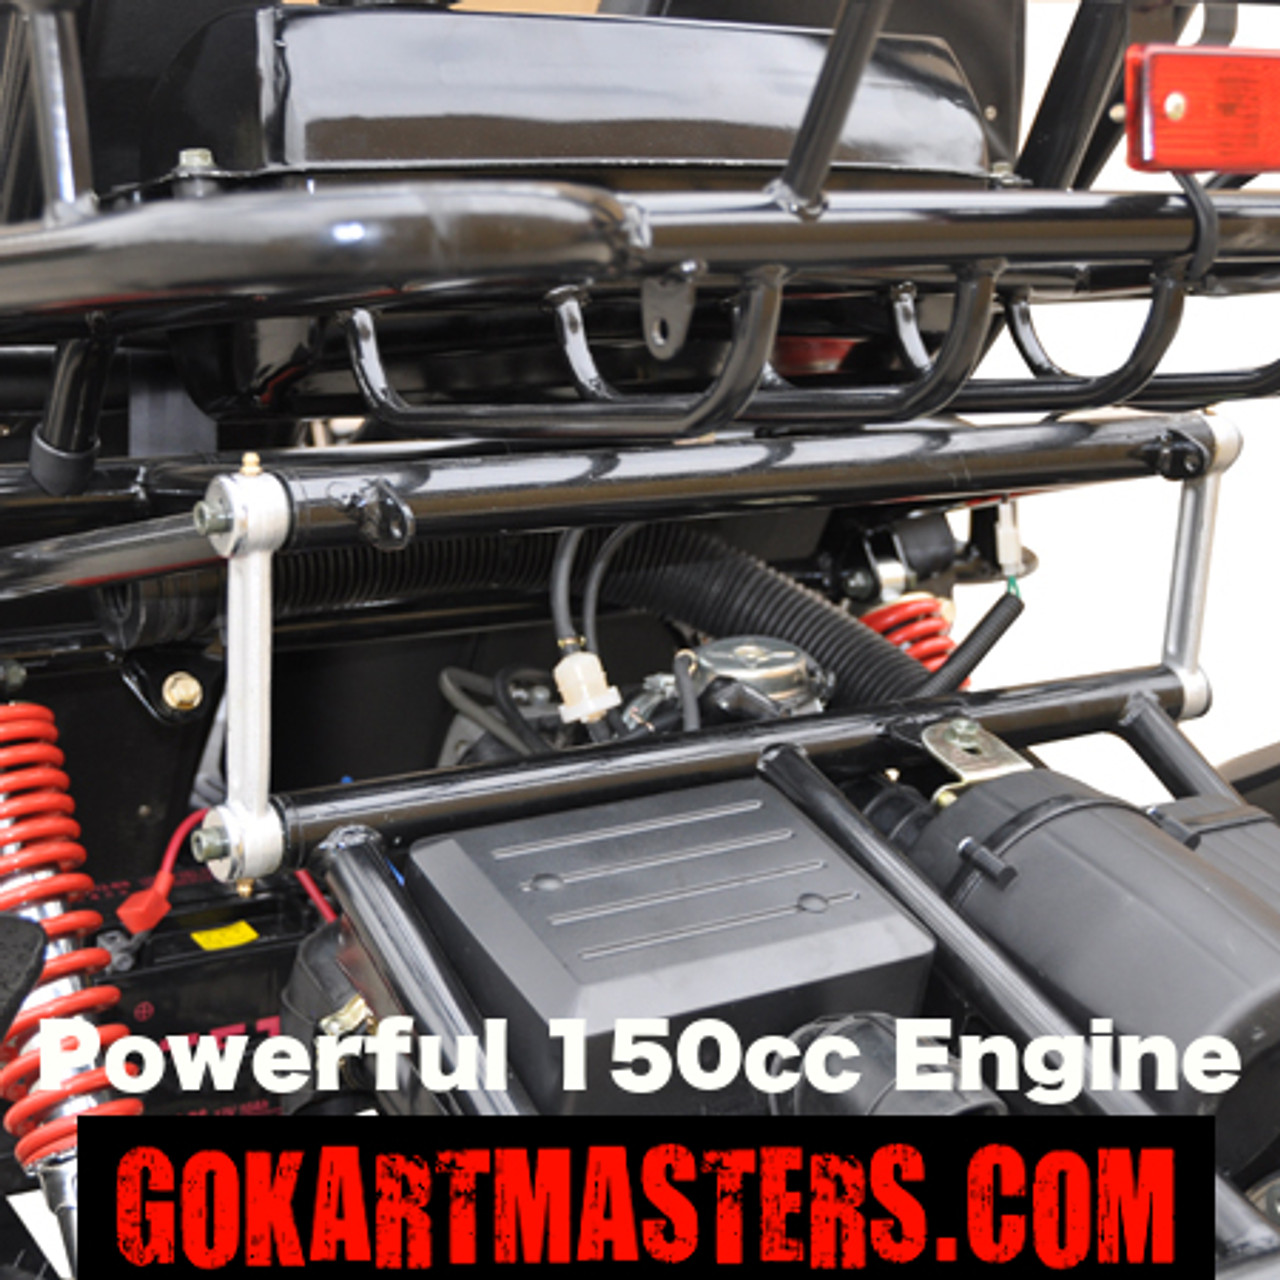 TrailMaster 150 XRX Go-Kart - 150cc Engine